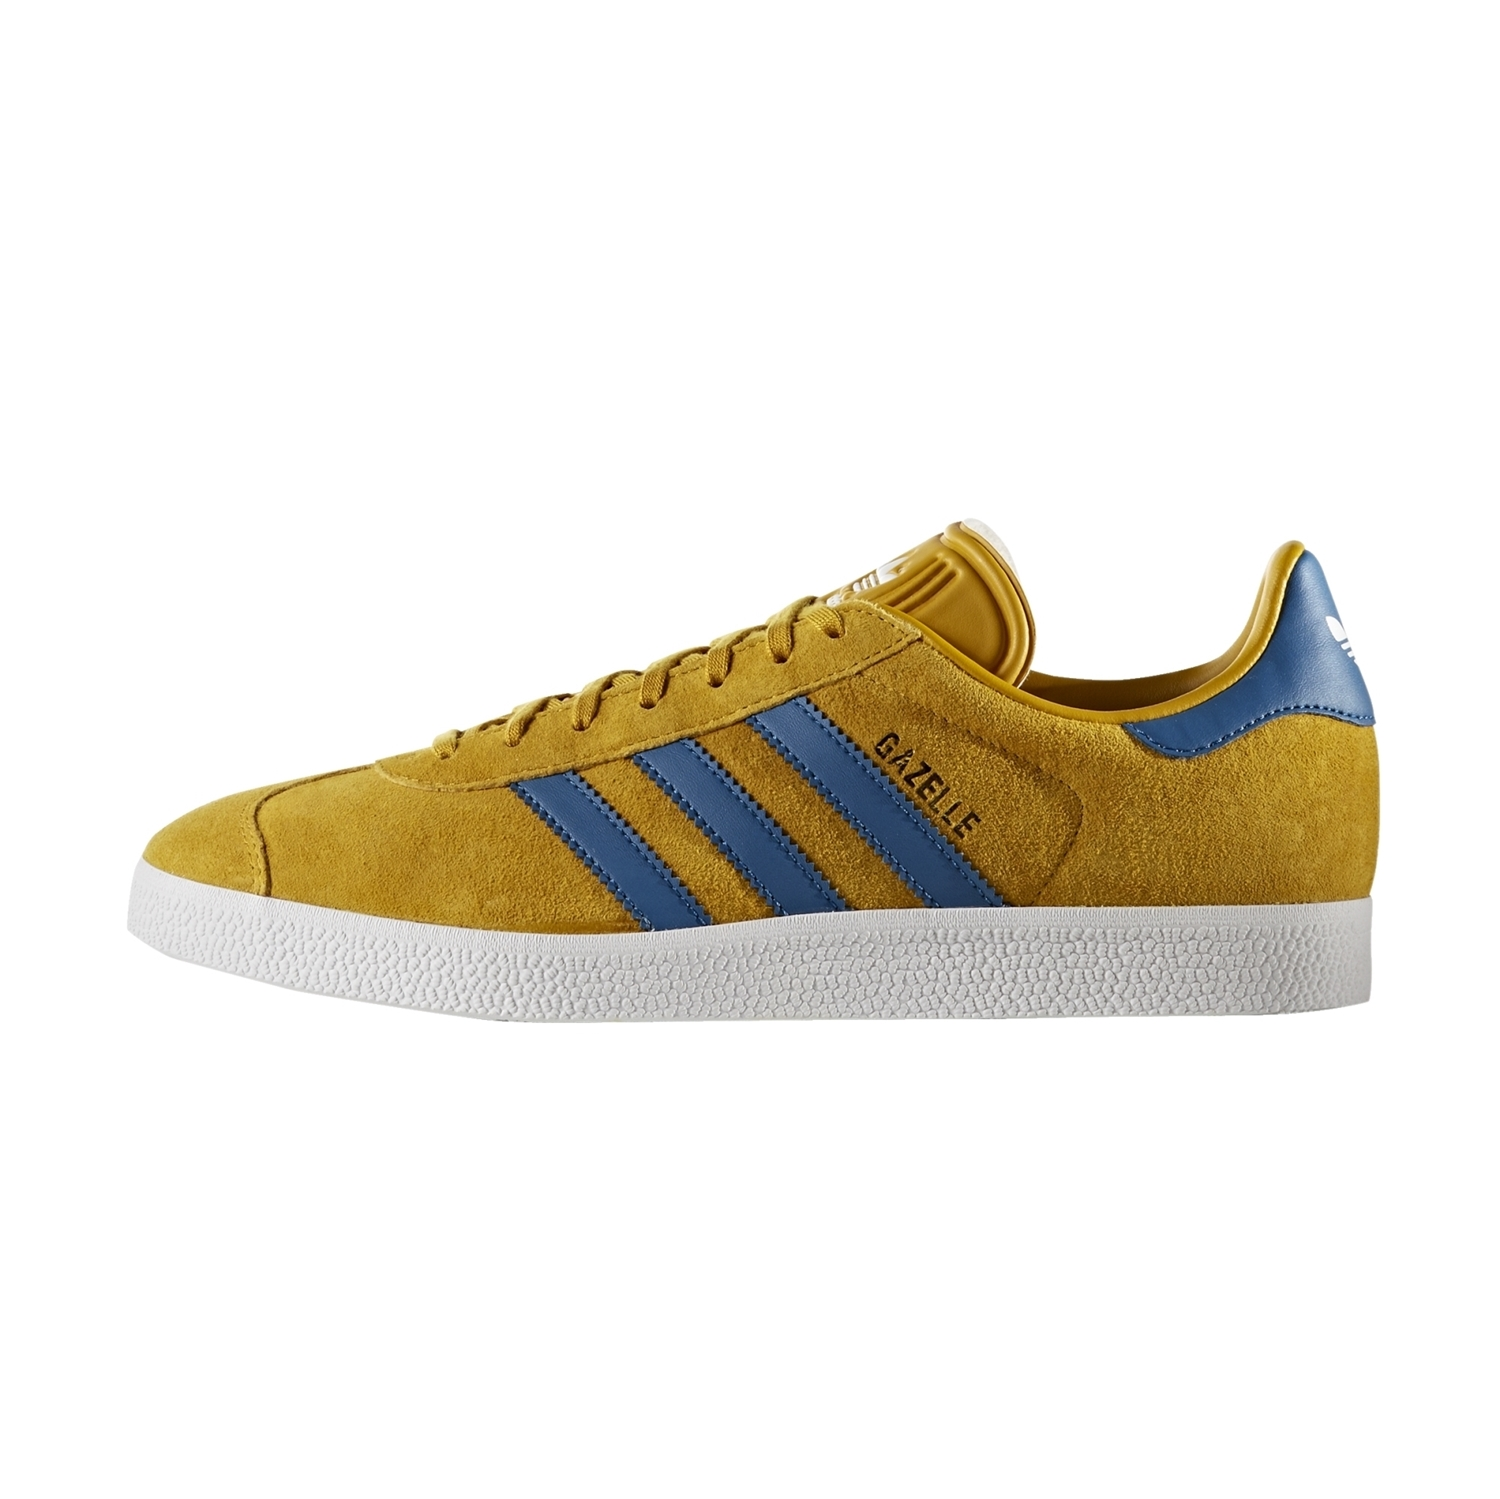 Adidas Originals Gazelle (Nomad YellowCore BlueFootwear White)